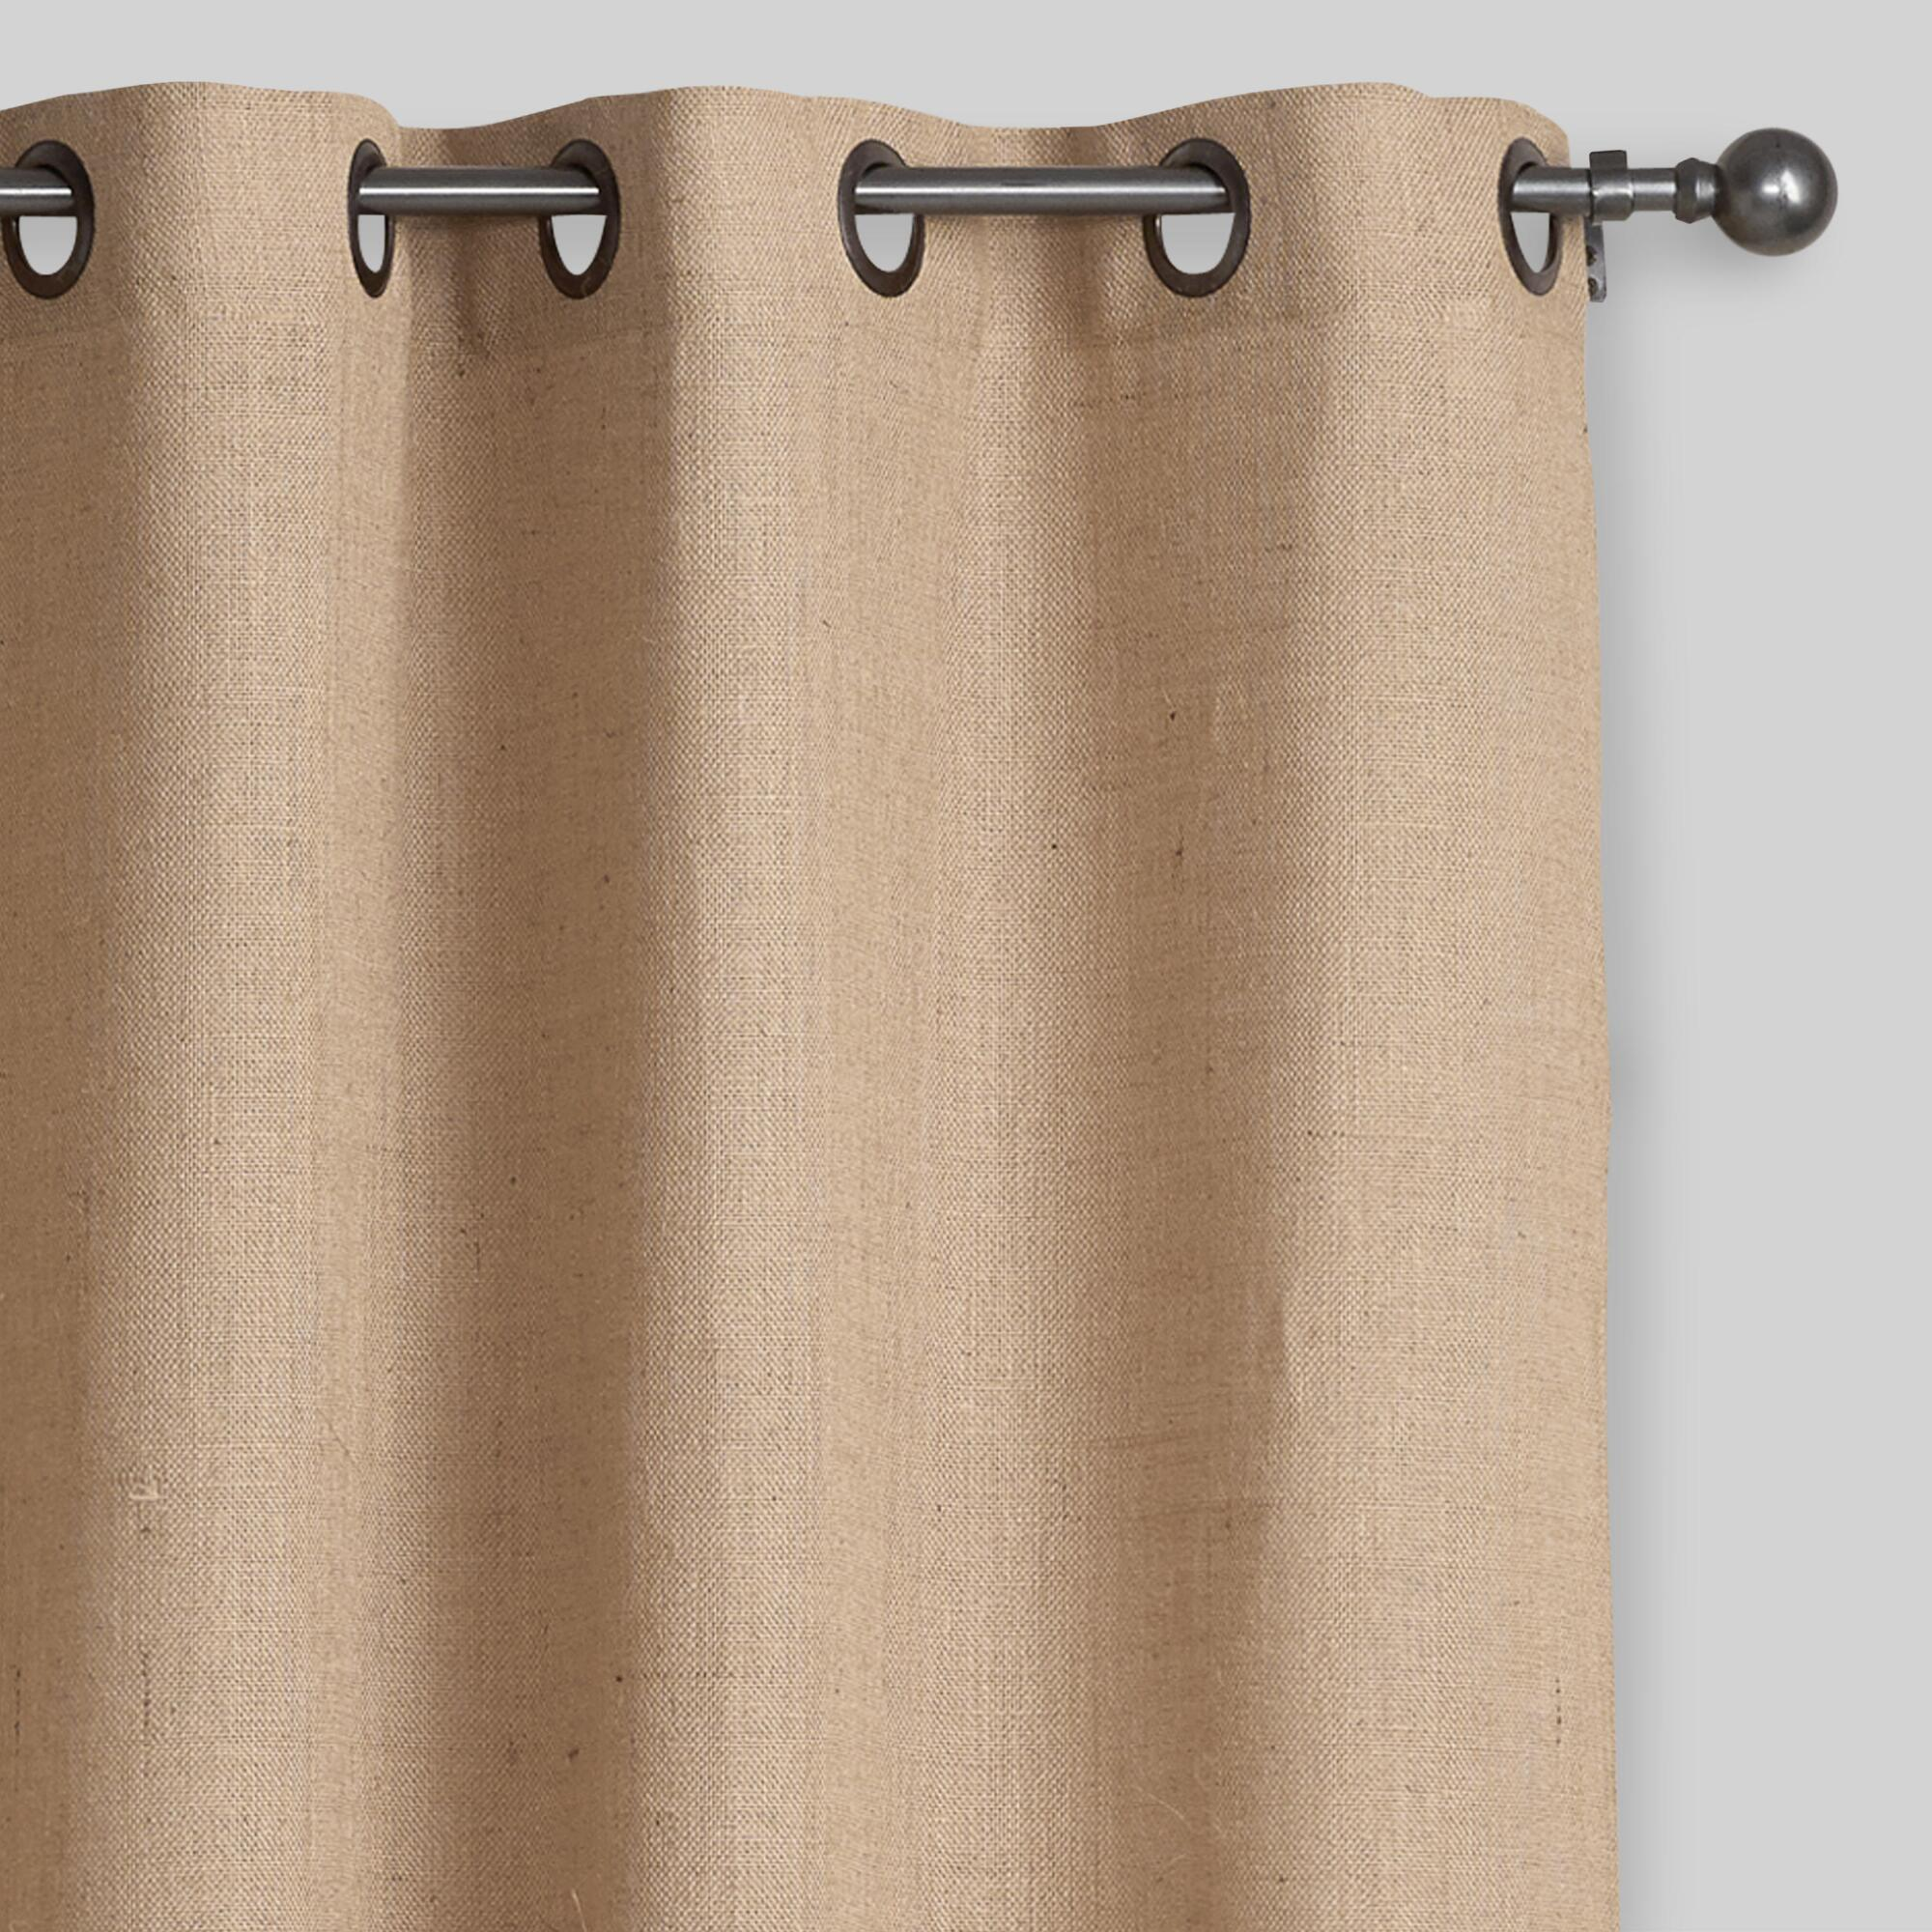 Burlap Kitchen Curtains For Sale